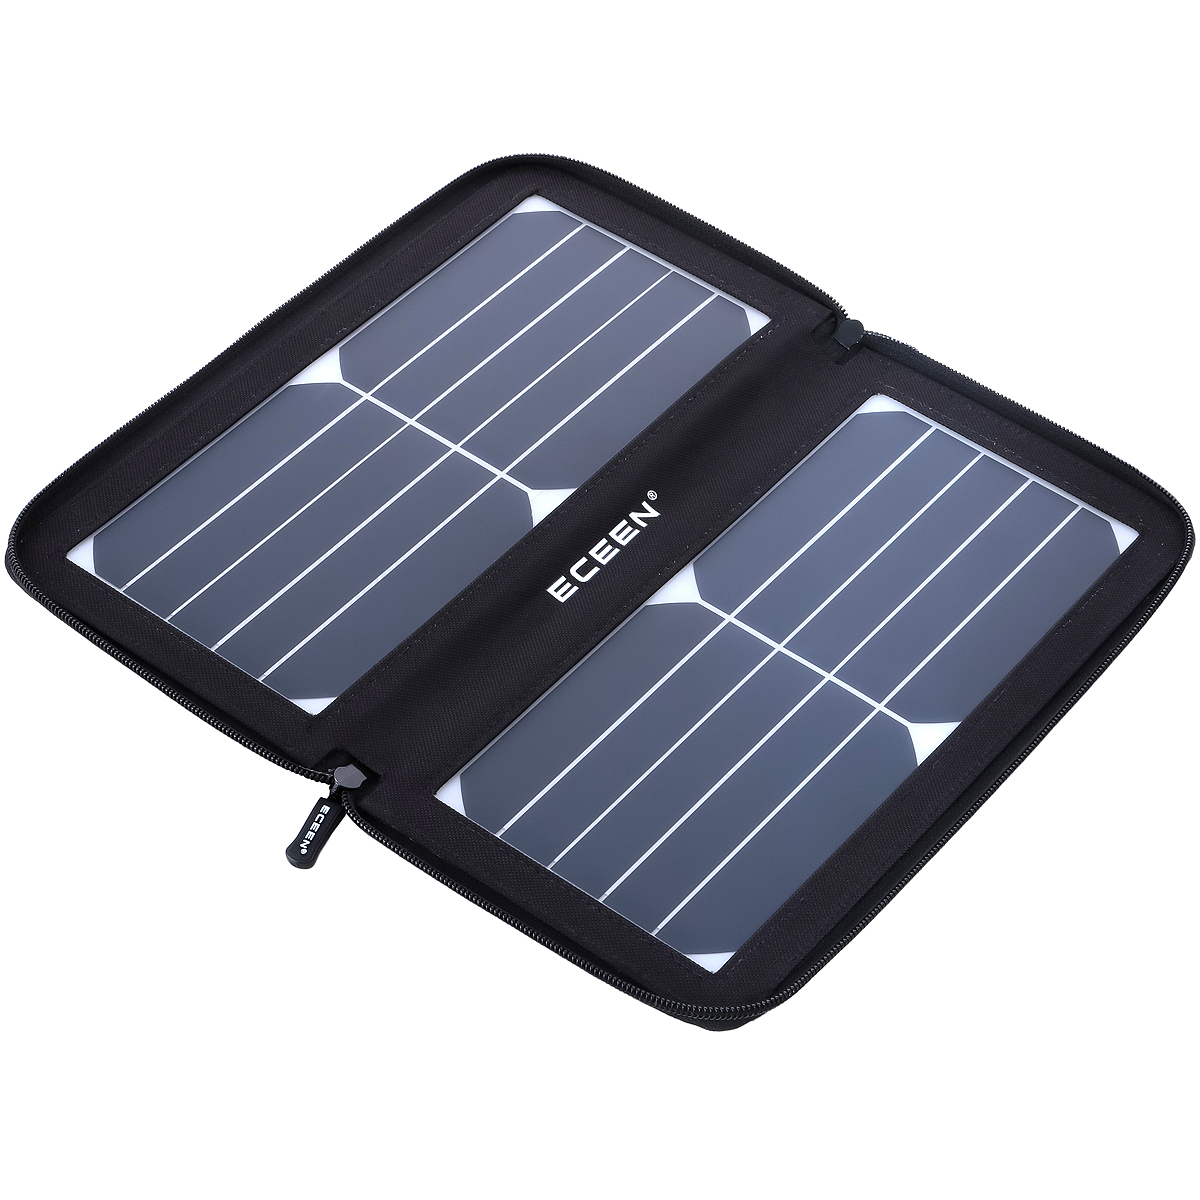 Eceen 10watts Zip Pack Solar Panels Charger Ece 647blacksolar Battery Charging Loading Zoom